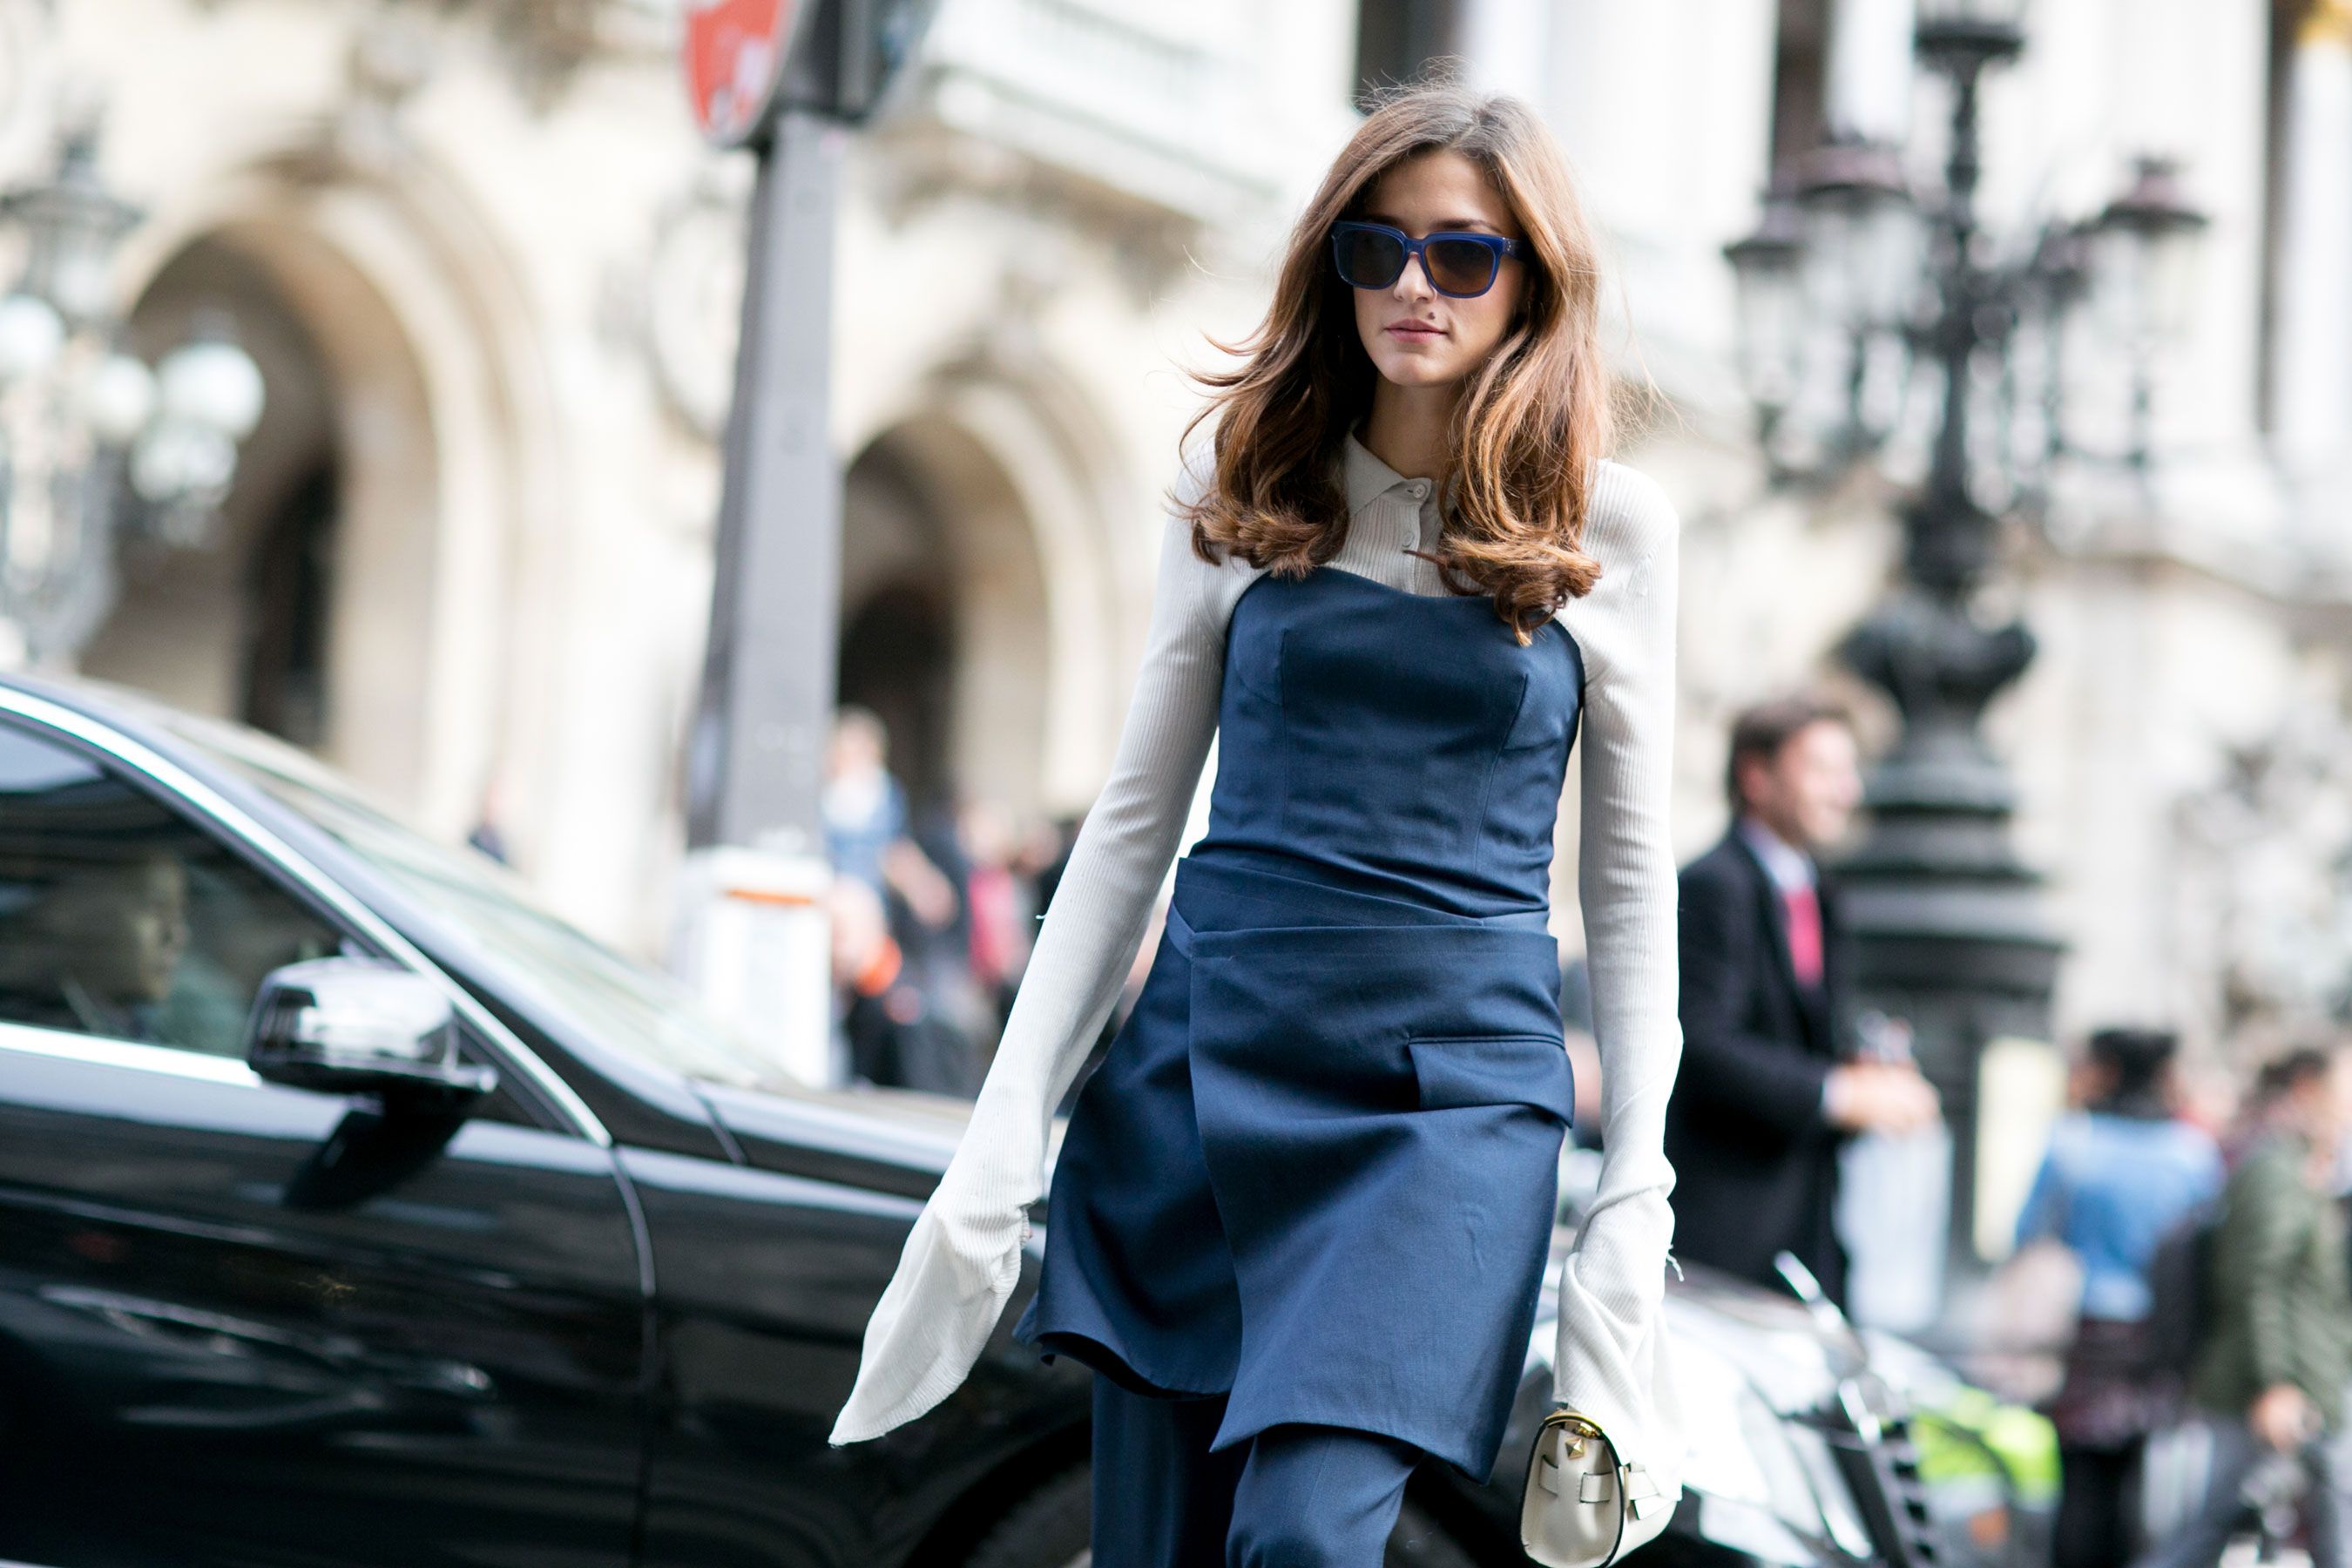 Paris-fashion-week-street-style-day-7-october-15-the-impression-50